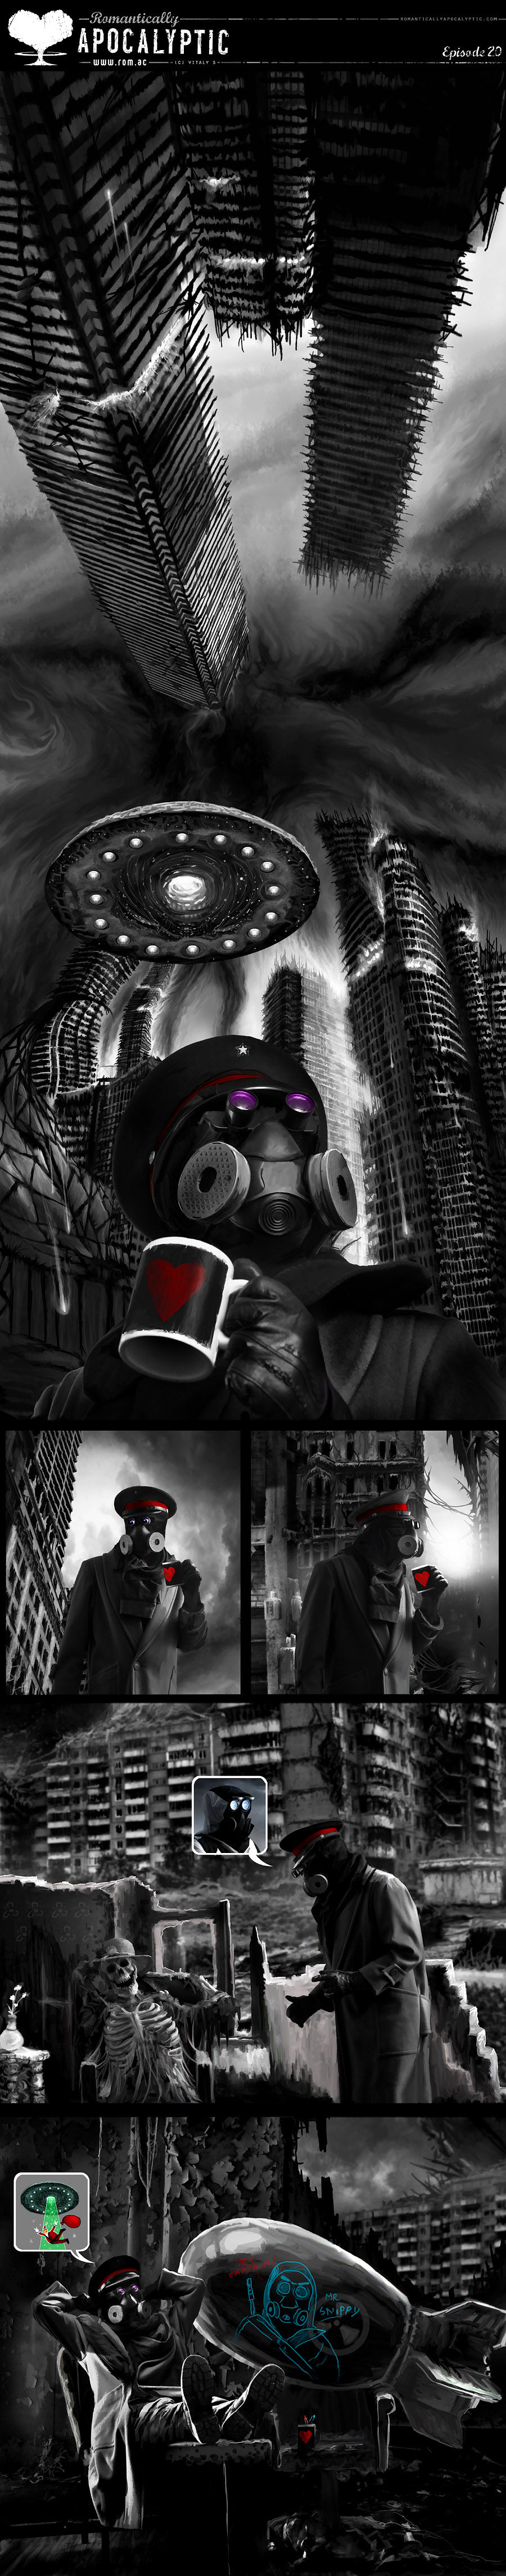 Romantically Apocalyptic 20 Ro by duleantovi